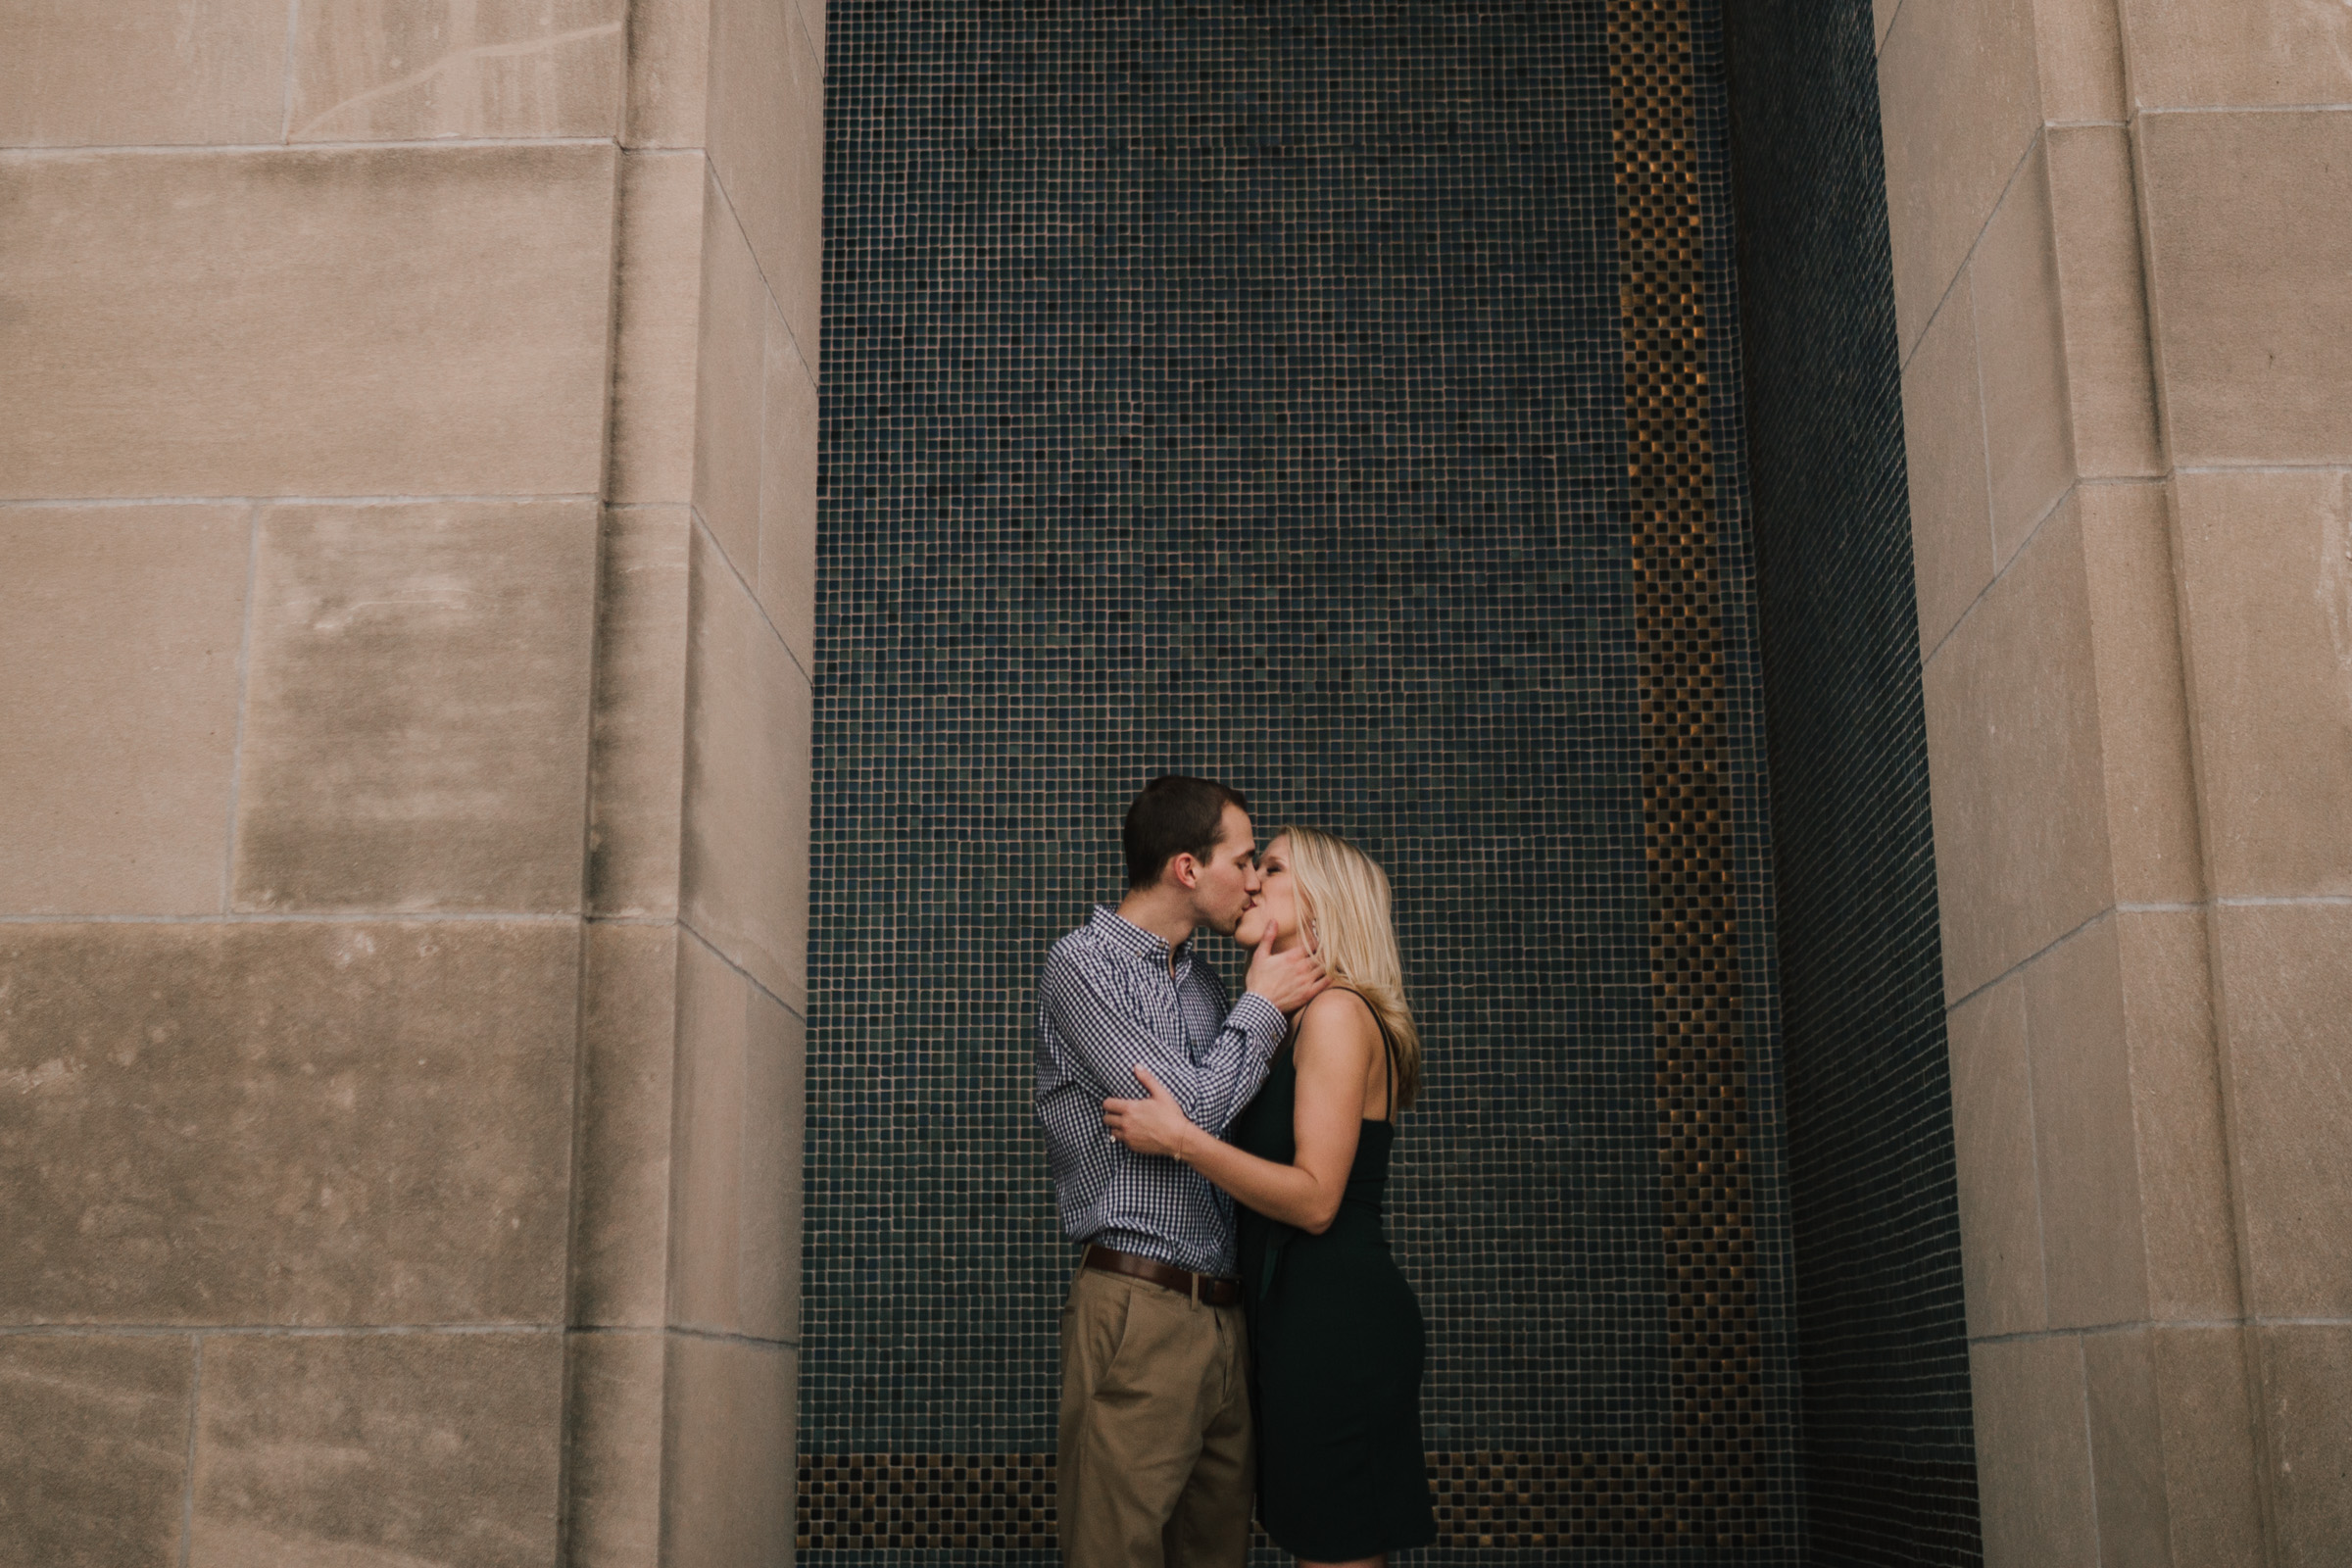 alyssa barletter photography nelson atkins art museum classic summer engagement session with dog-25.jpg